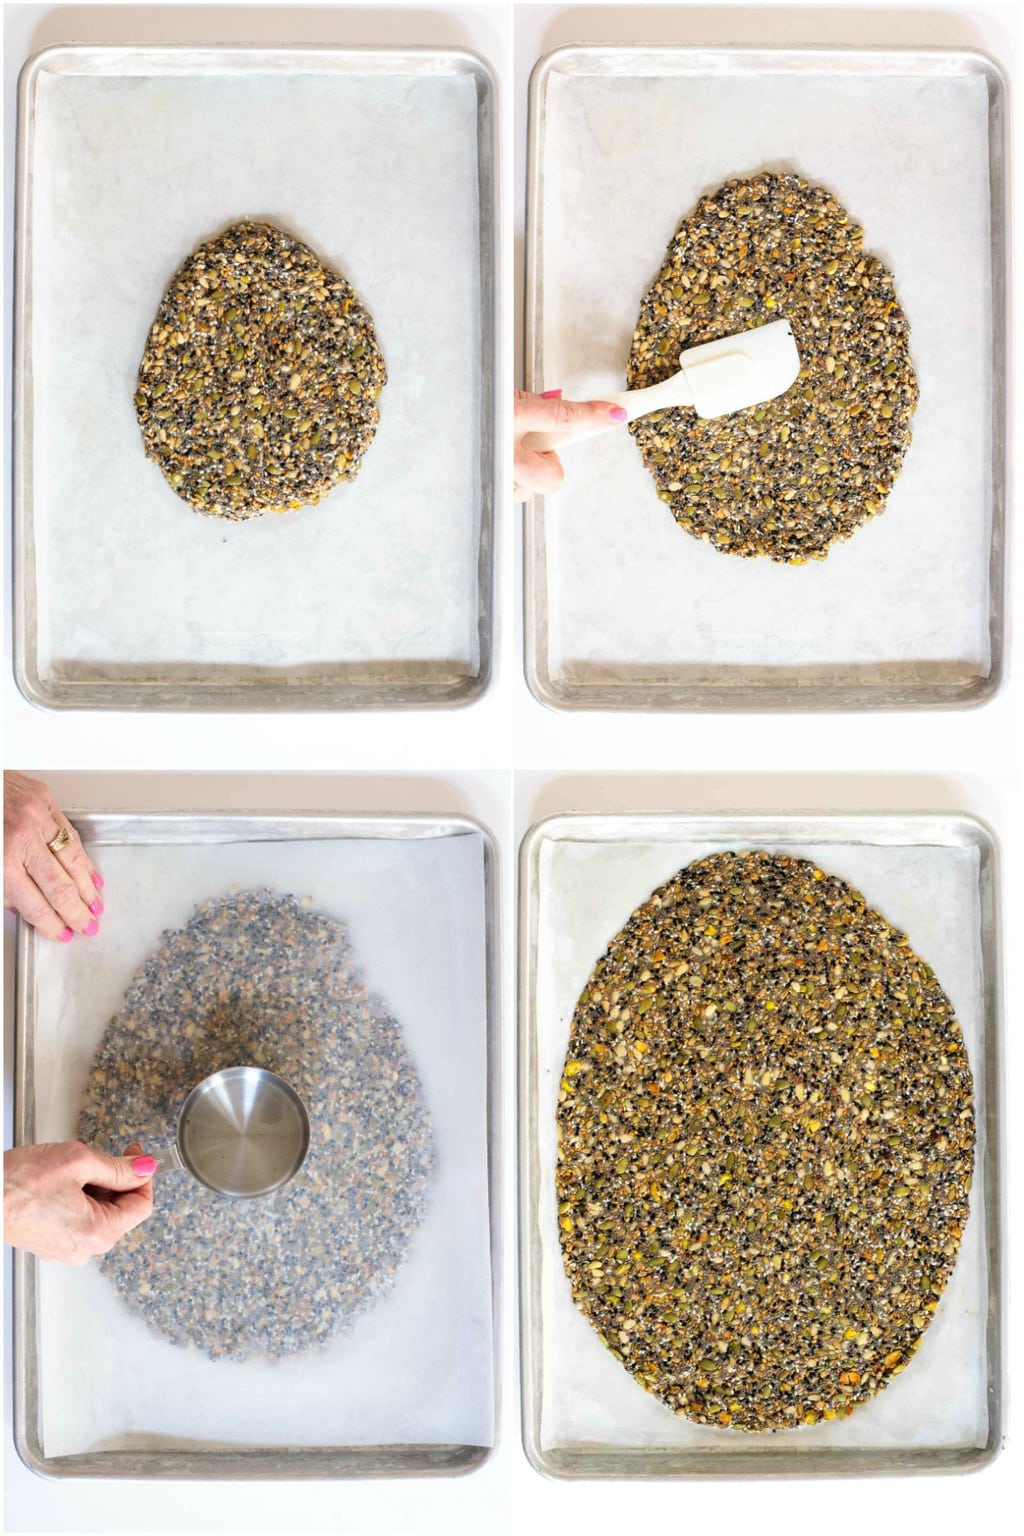 Photo collage of steps for making Easy Pine Nut Seeded Crackers.